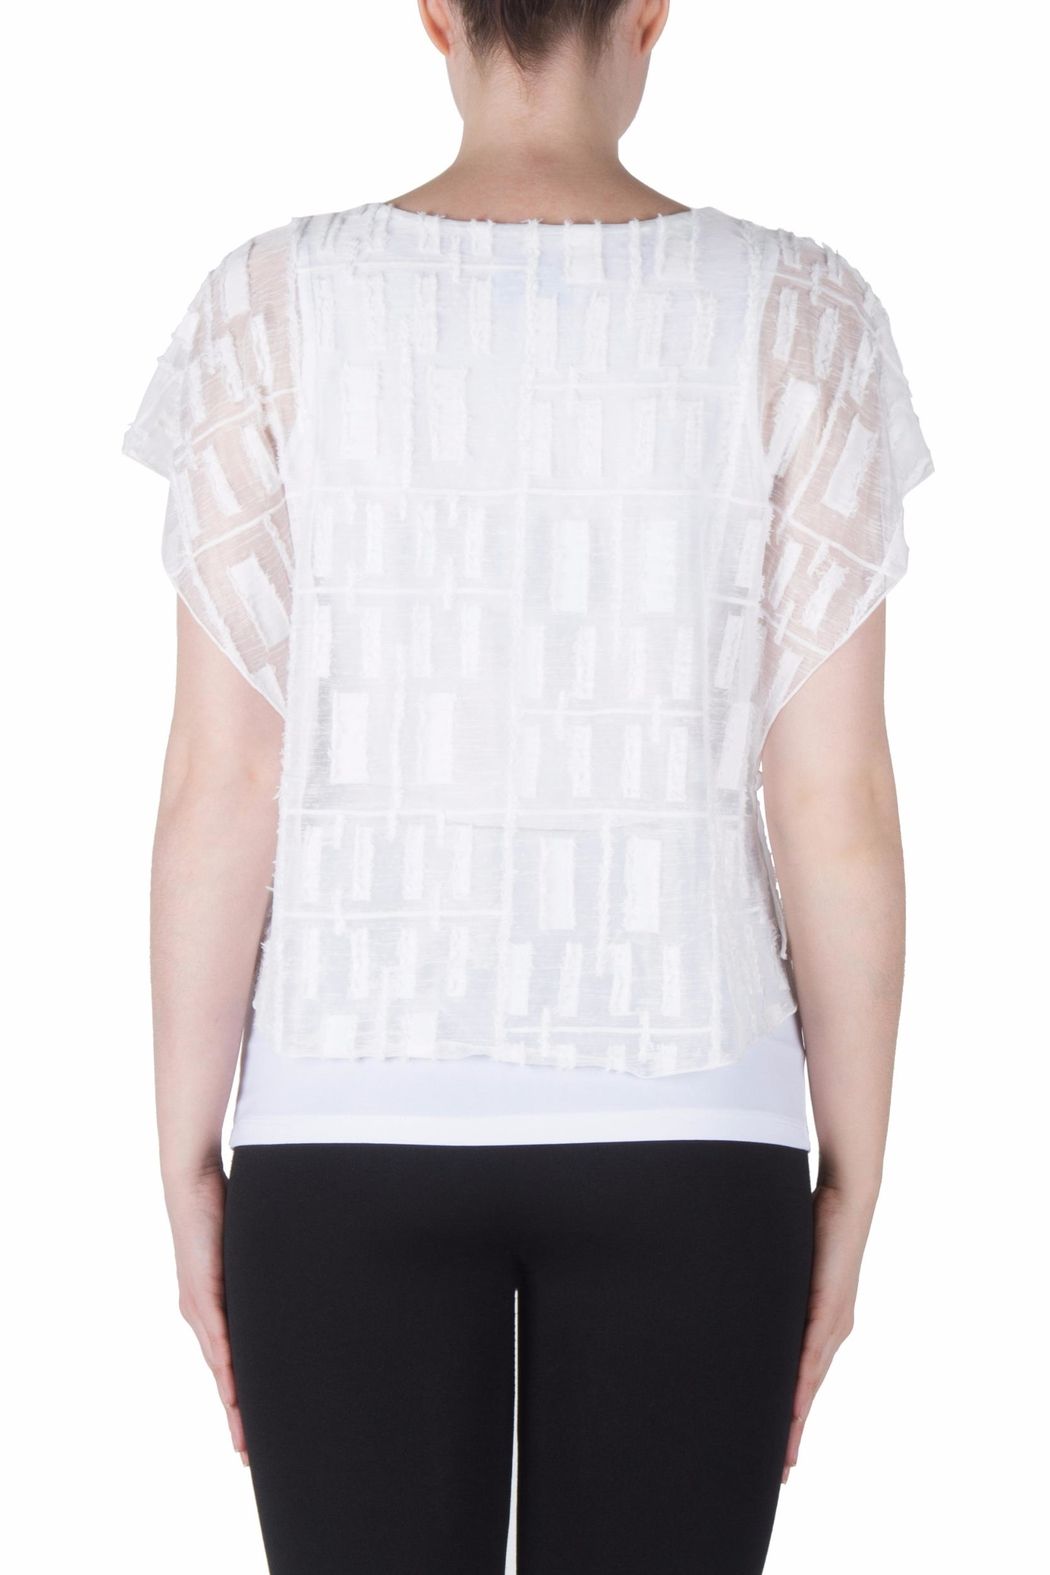 Joseph Ribkoff Fitted Layer Top - Side Cropped Image